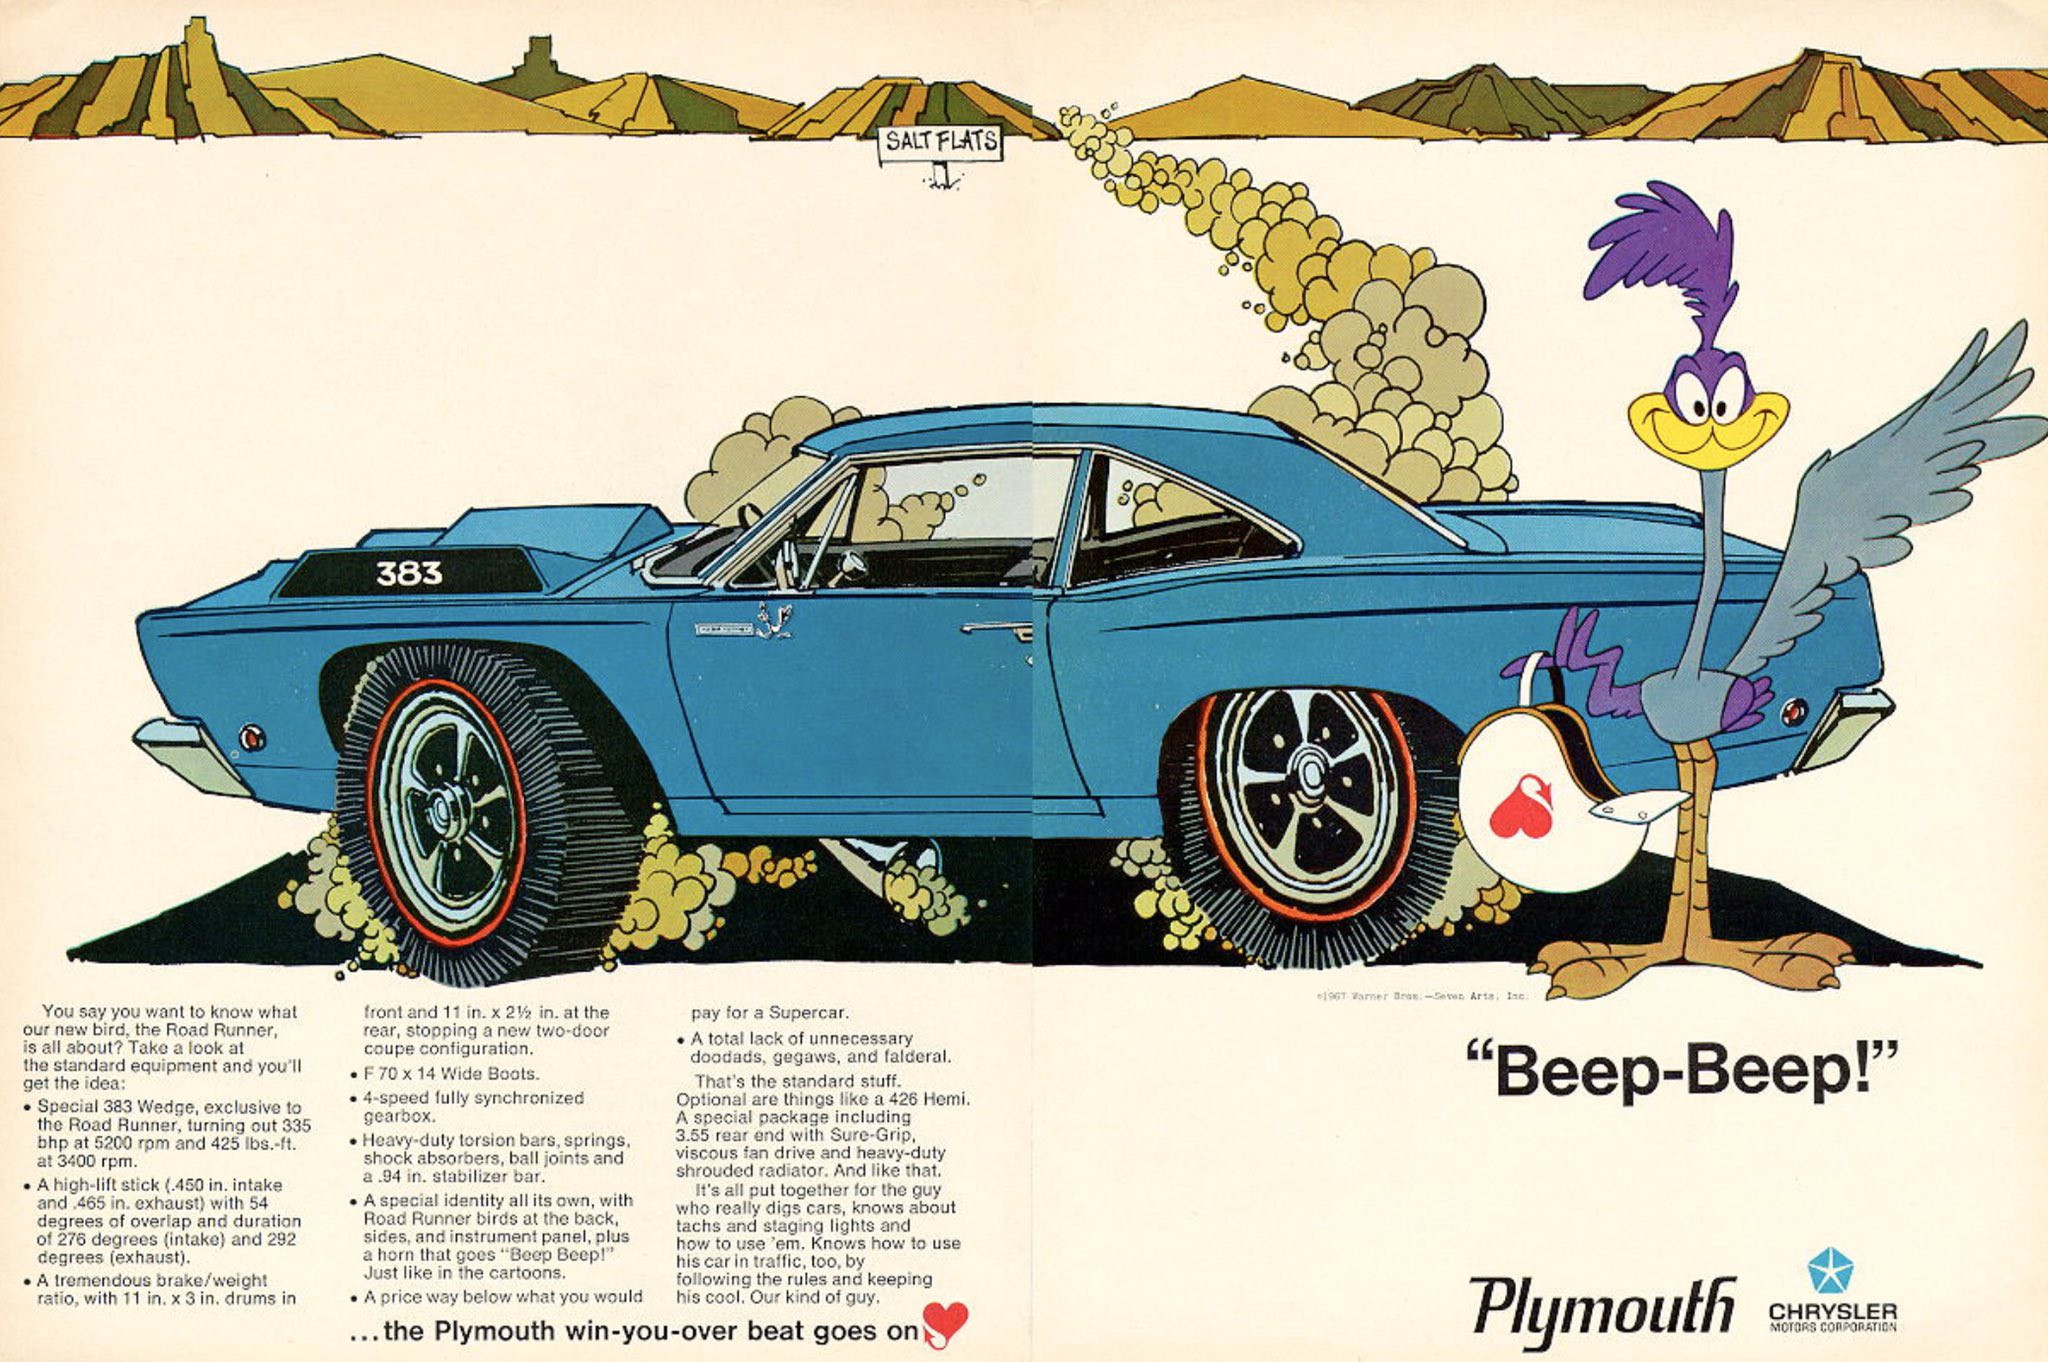 Road Runner ad from 1968